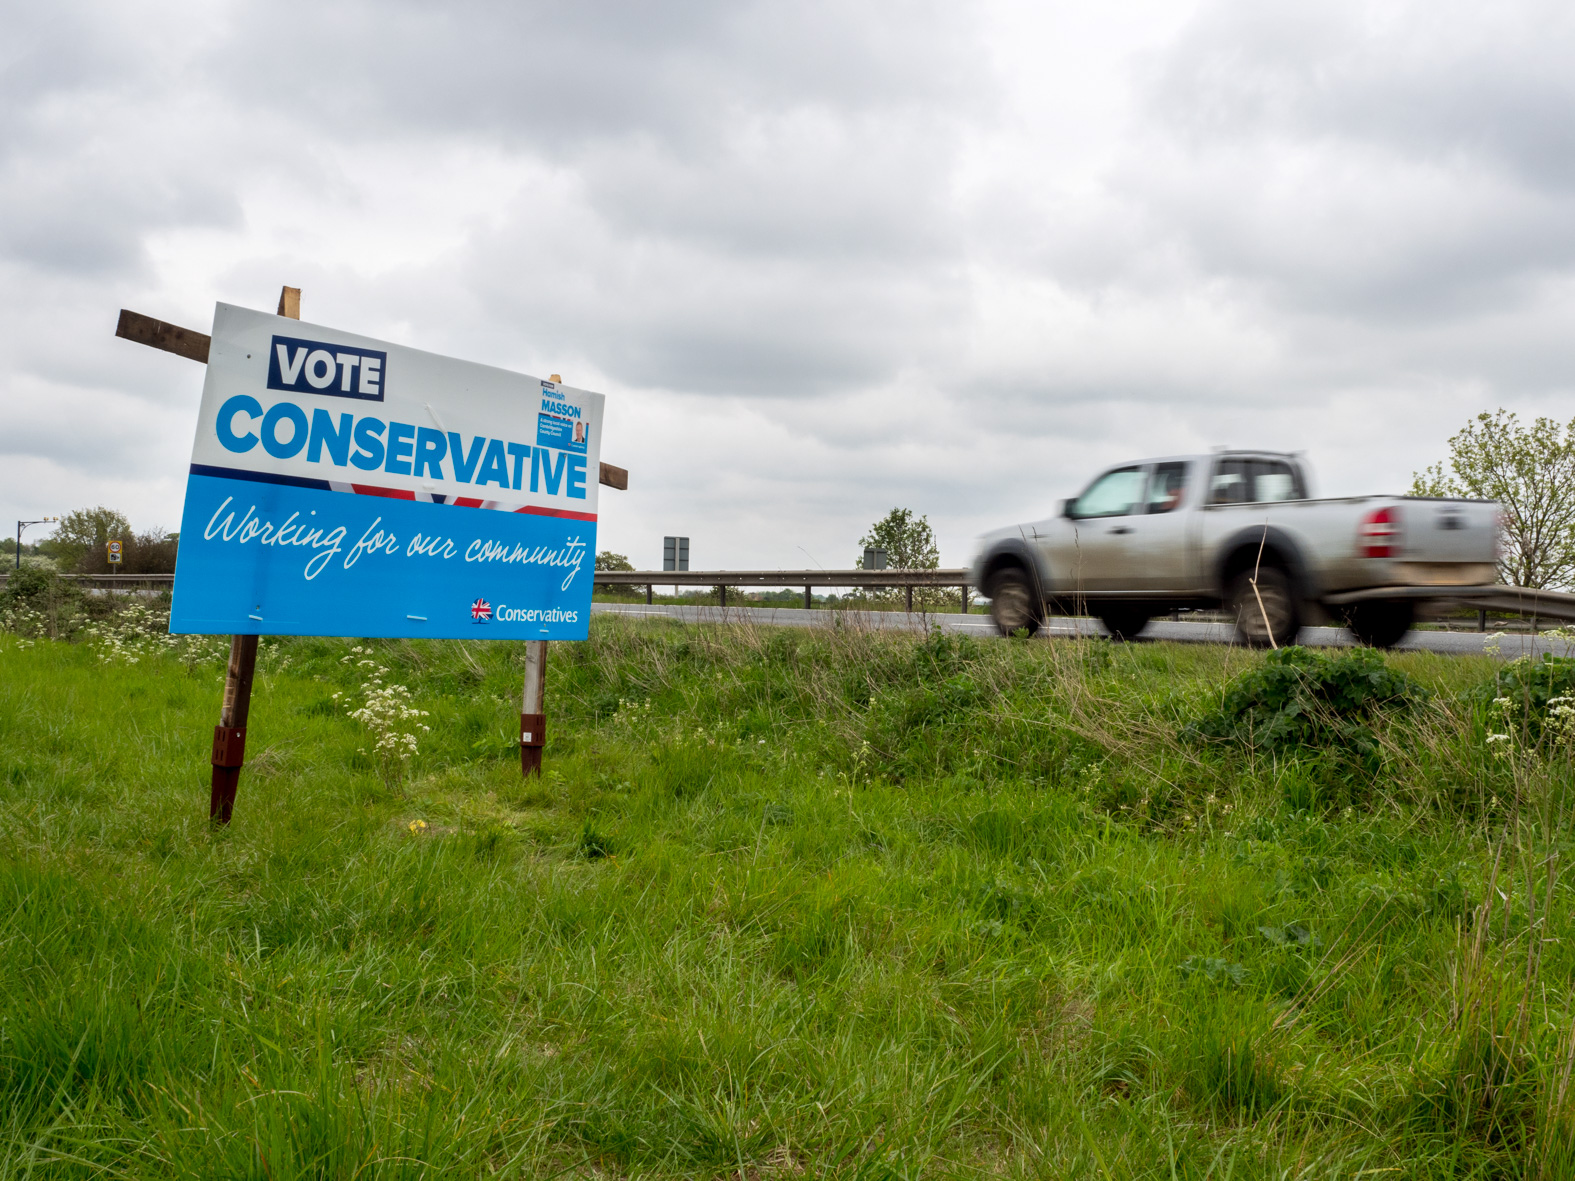 VOTE CONSERVATIVE sign. Sandy, Bedfordshire.